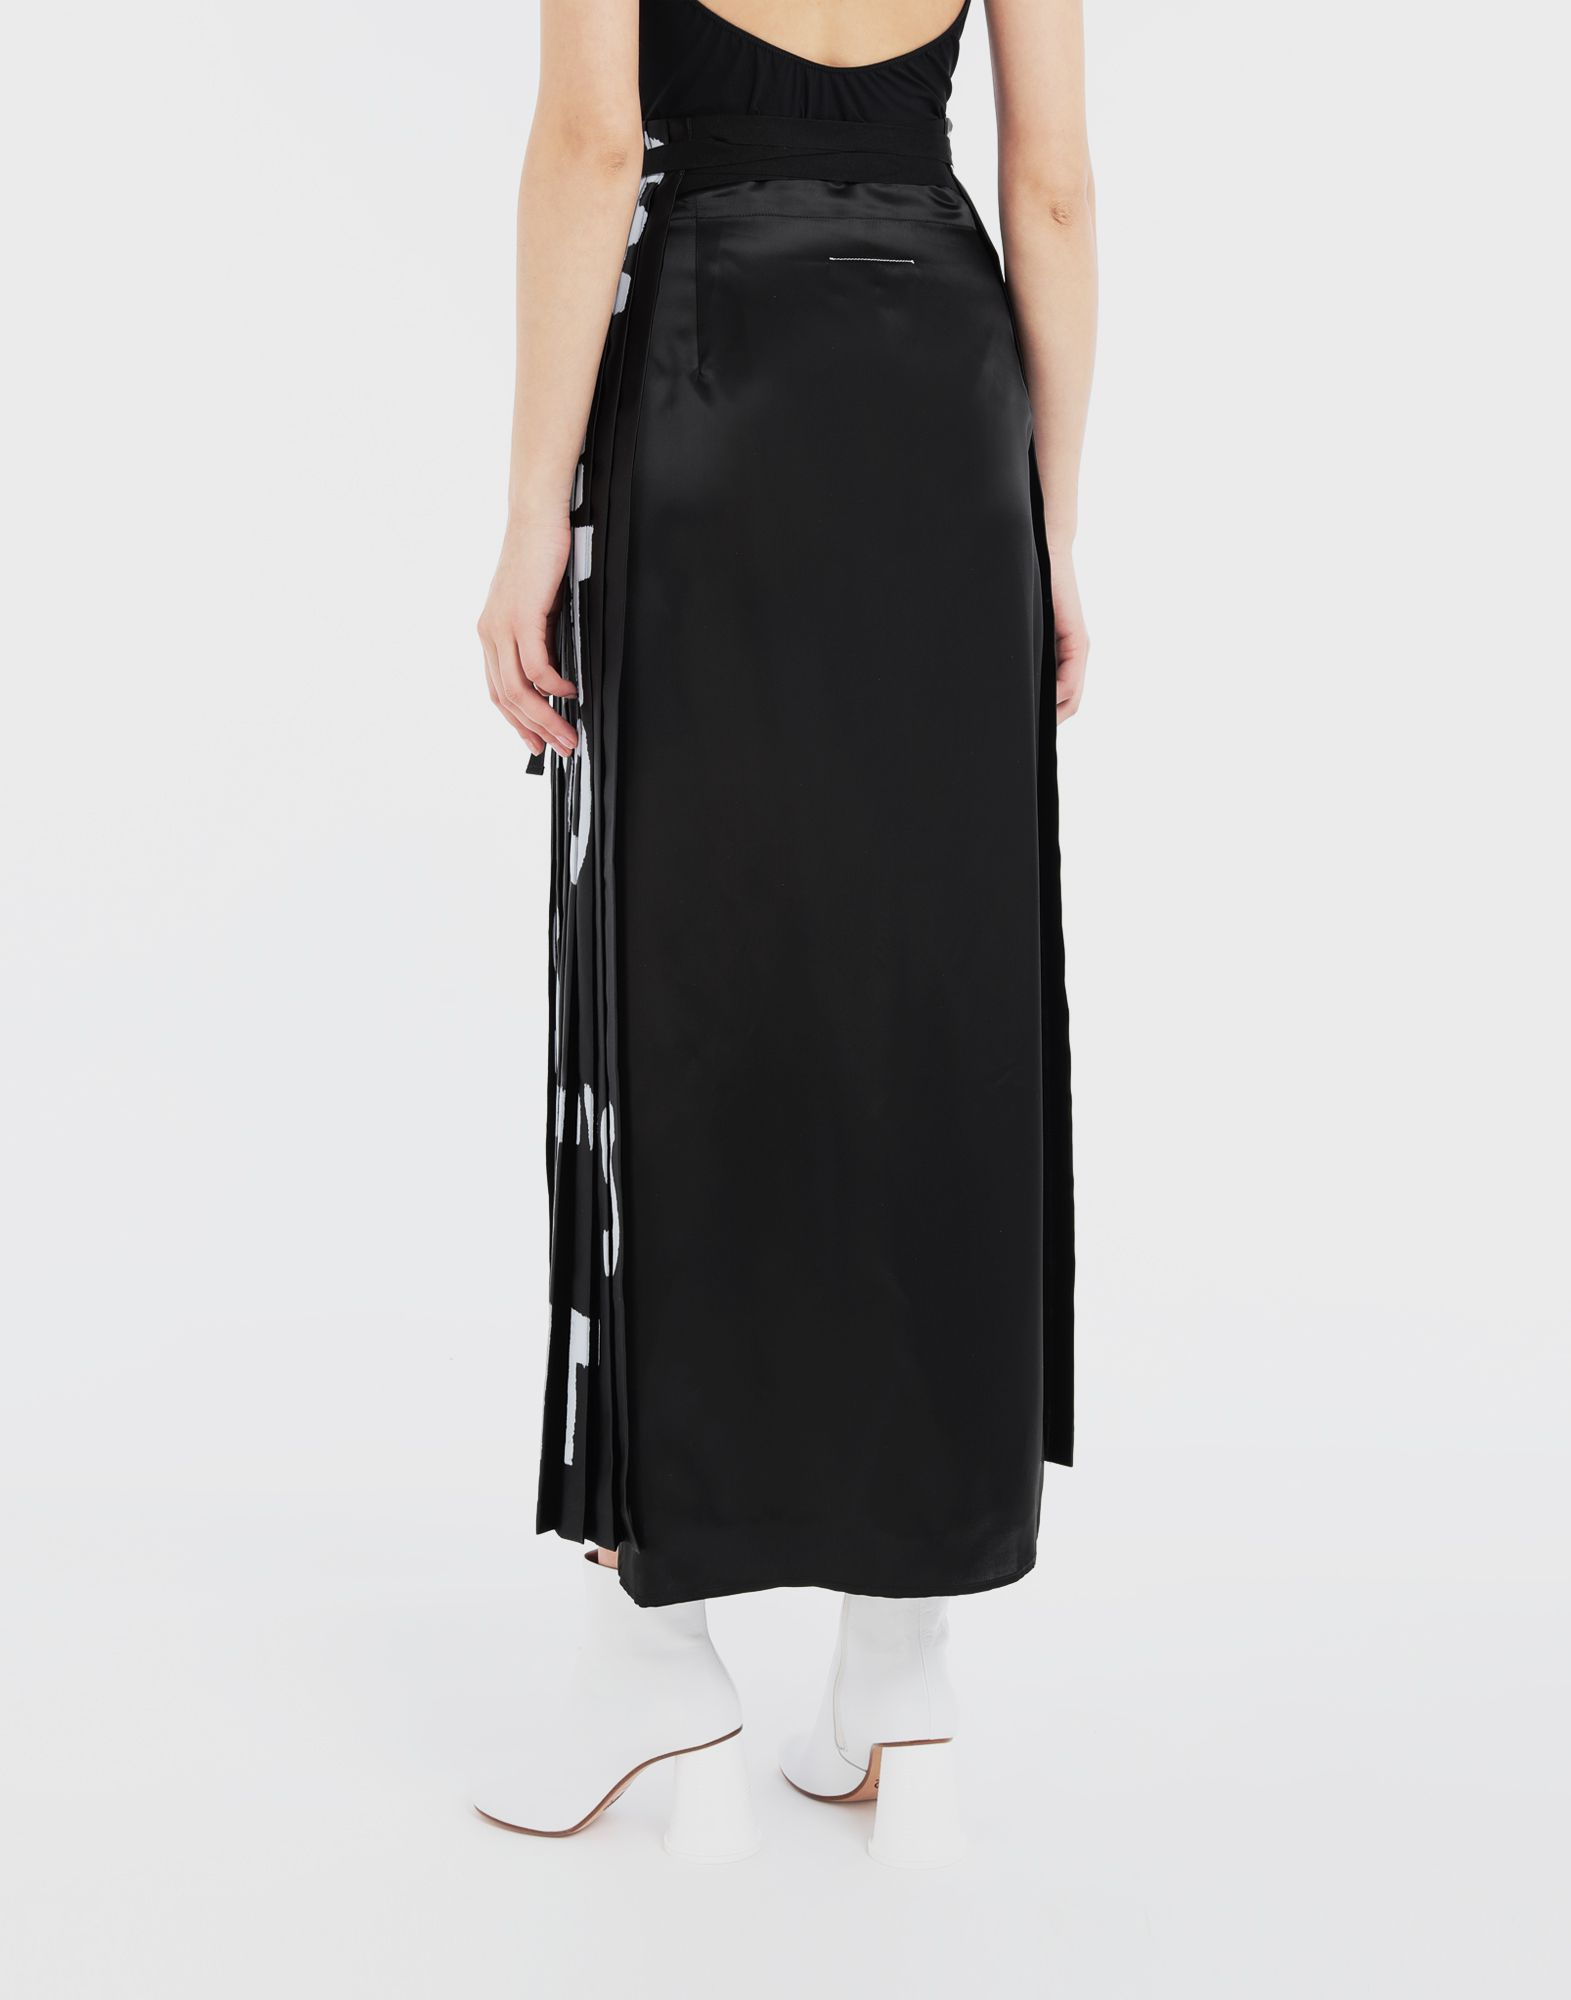 MM6 MAISON MARGIELA Charity AIDS-print pleated skirt  Long skirt Woman e